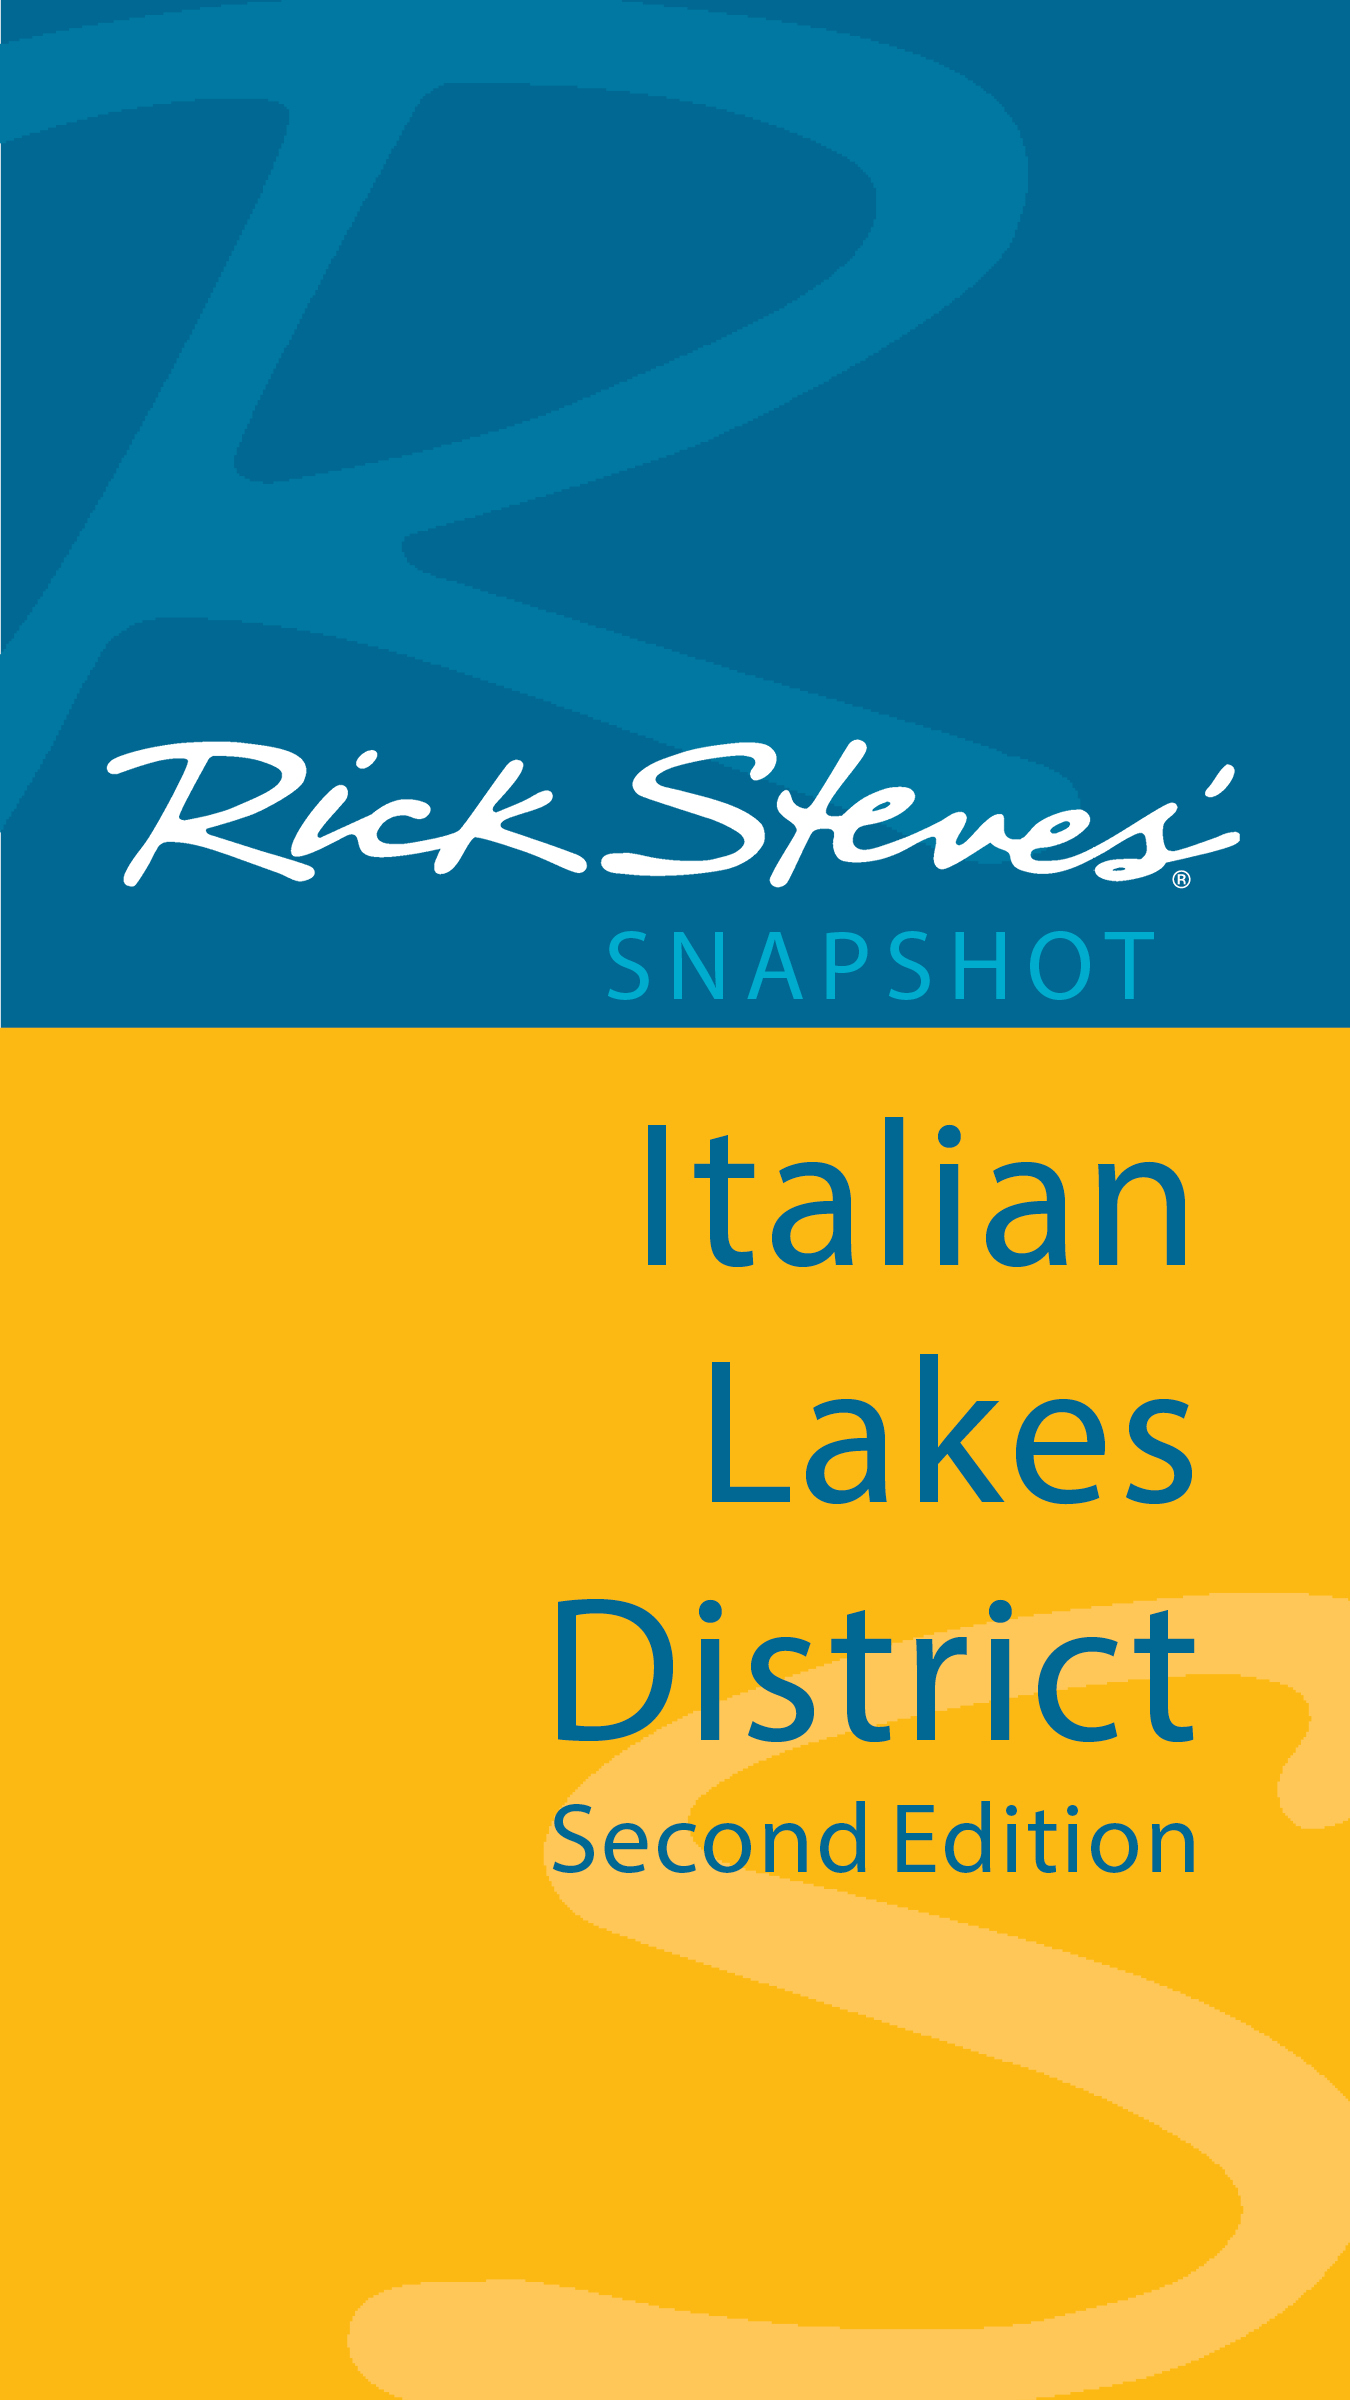 Rick Steves' Snapshot Italian Lakes District By: Rick Steves